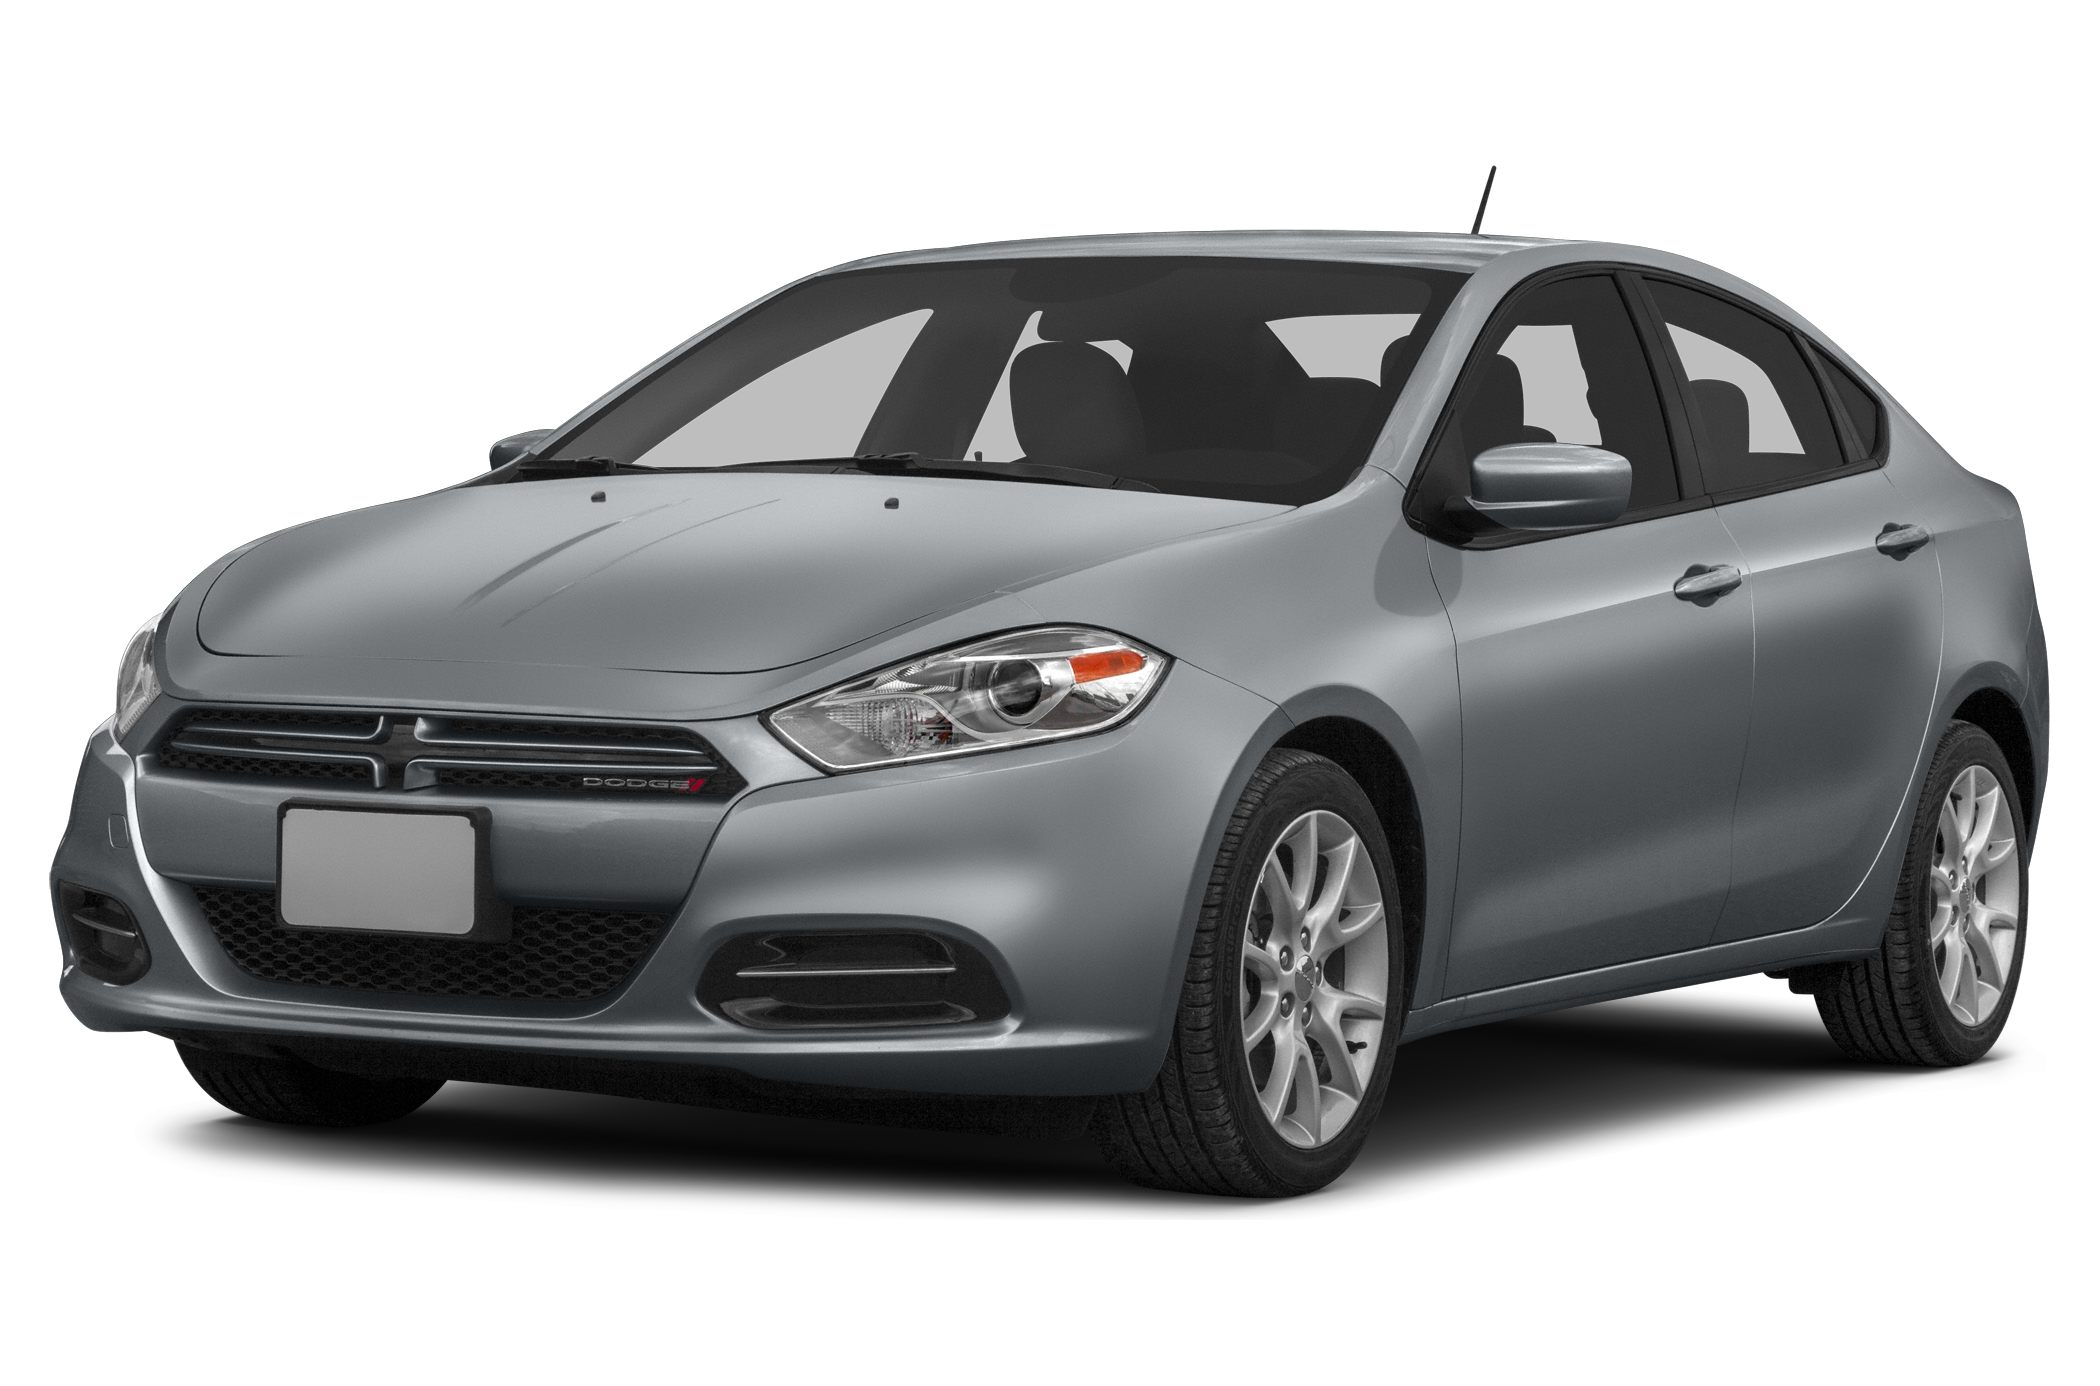 2015 Dodge Dart SE Sedan for sale in Tahlequah for $19,865 with 15 miles